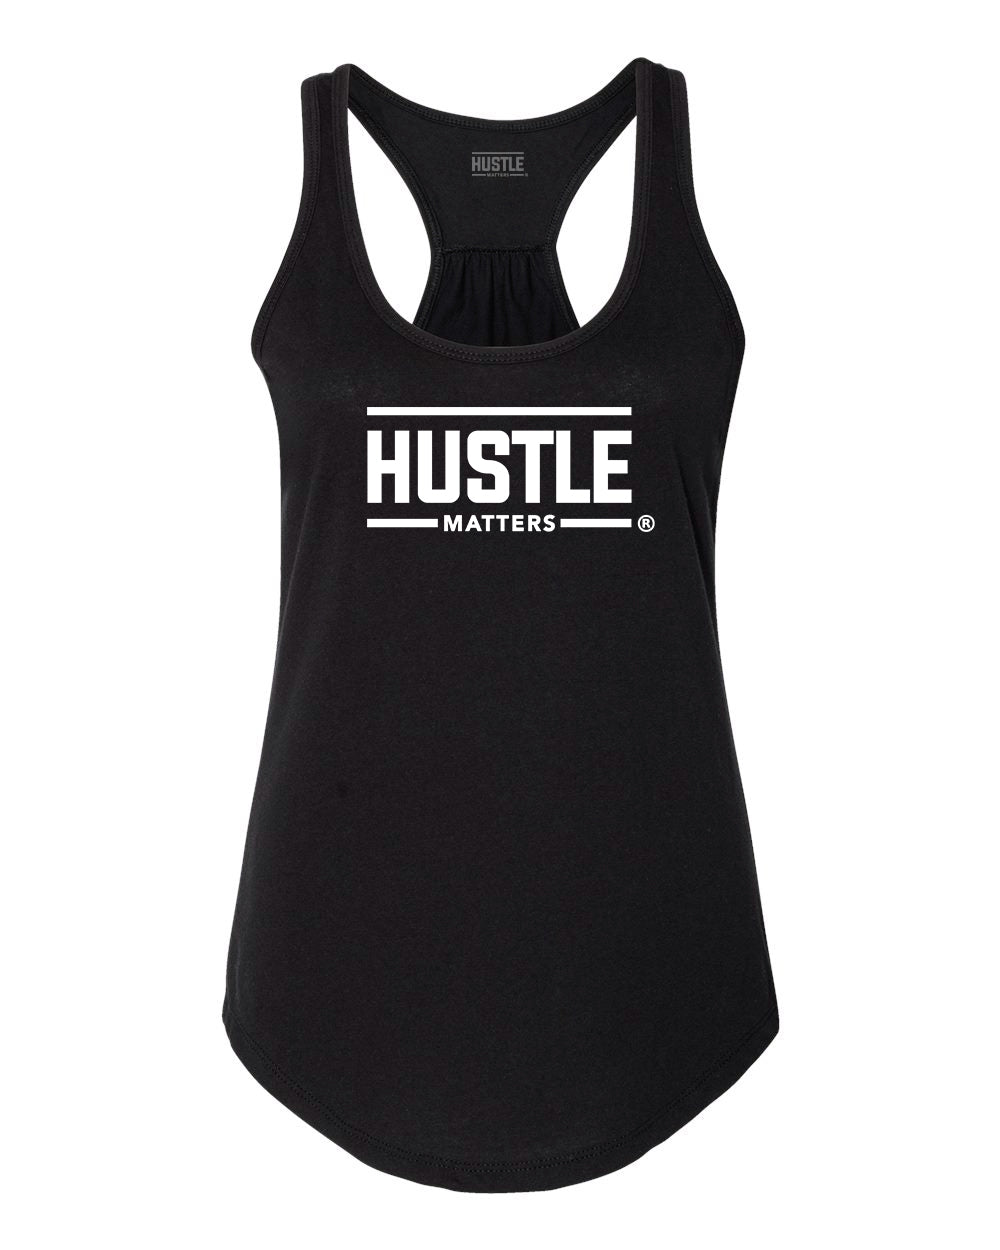 Hustle Matters® Black Women's Tank